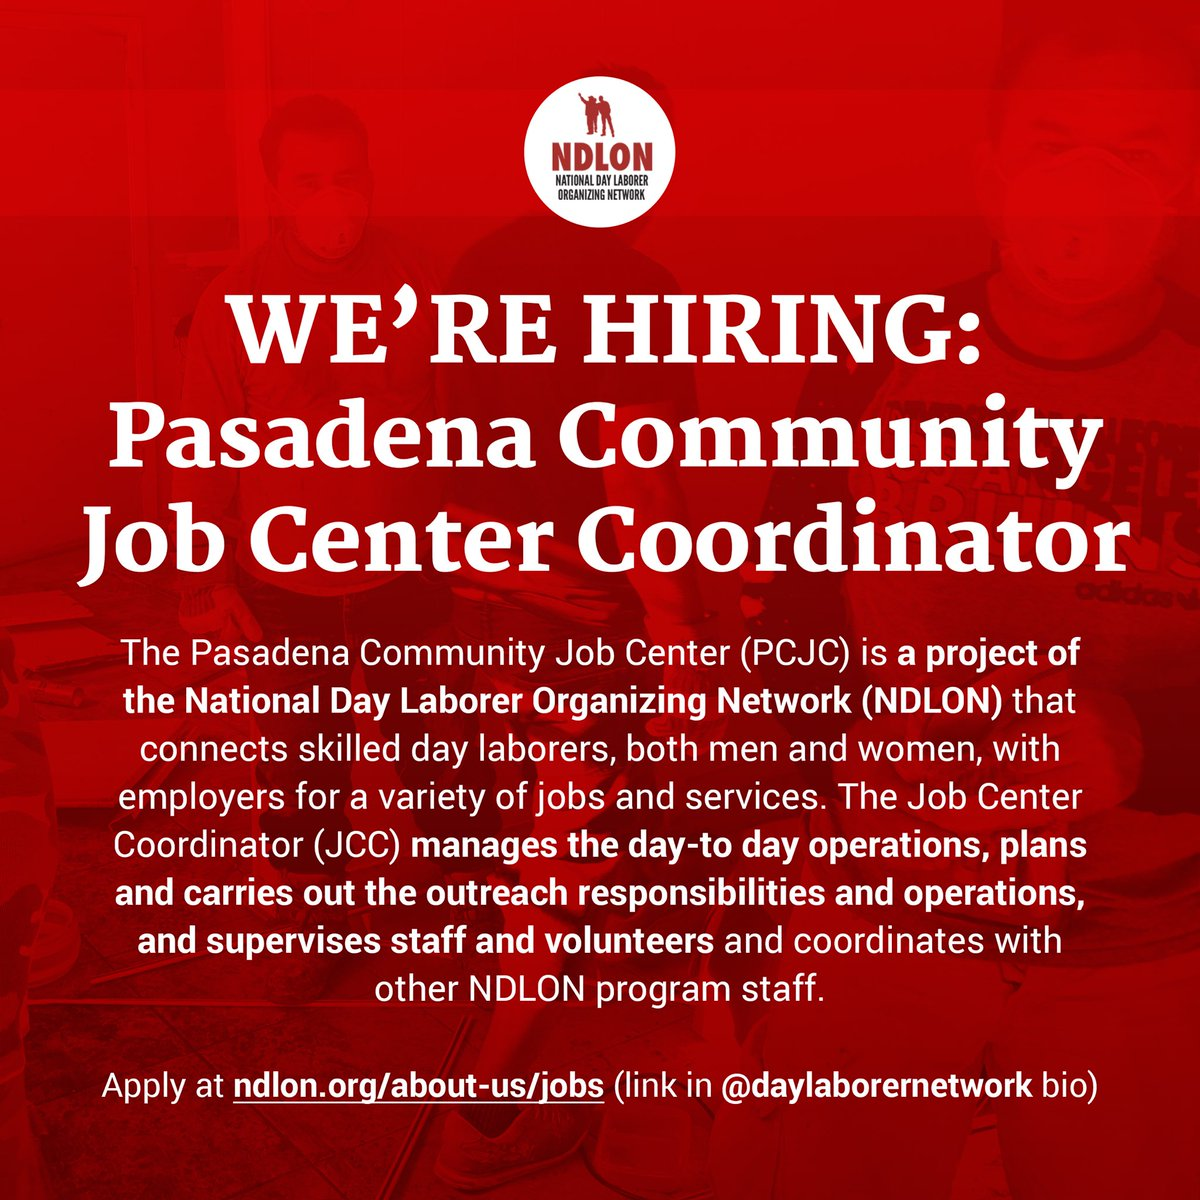 WE'RE HIRING: Pasadena Community Job Center Coordinator. More info about responsibilities, compensation, and how to apply at ndlon.org/about-us/jobs #Pasadena #Jobs #DayLaborers